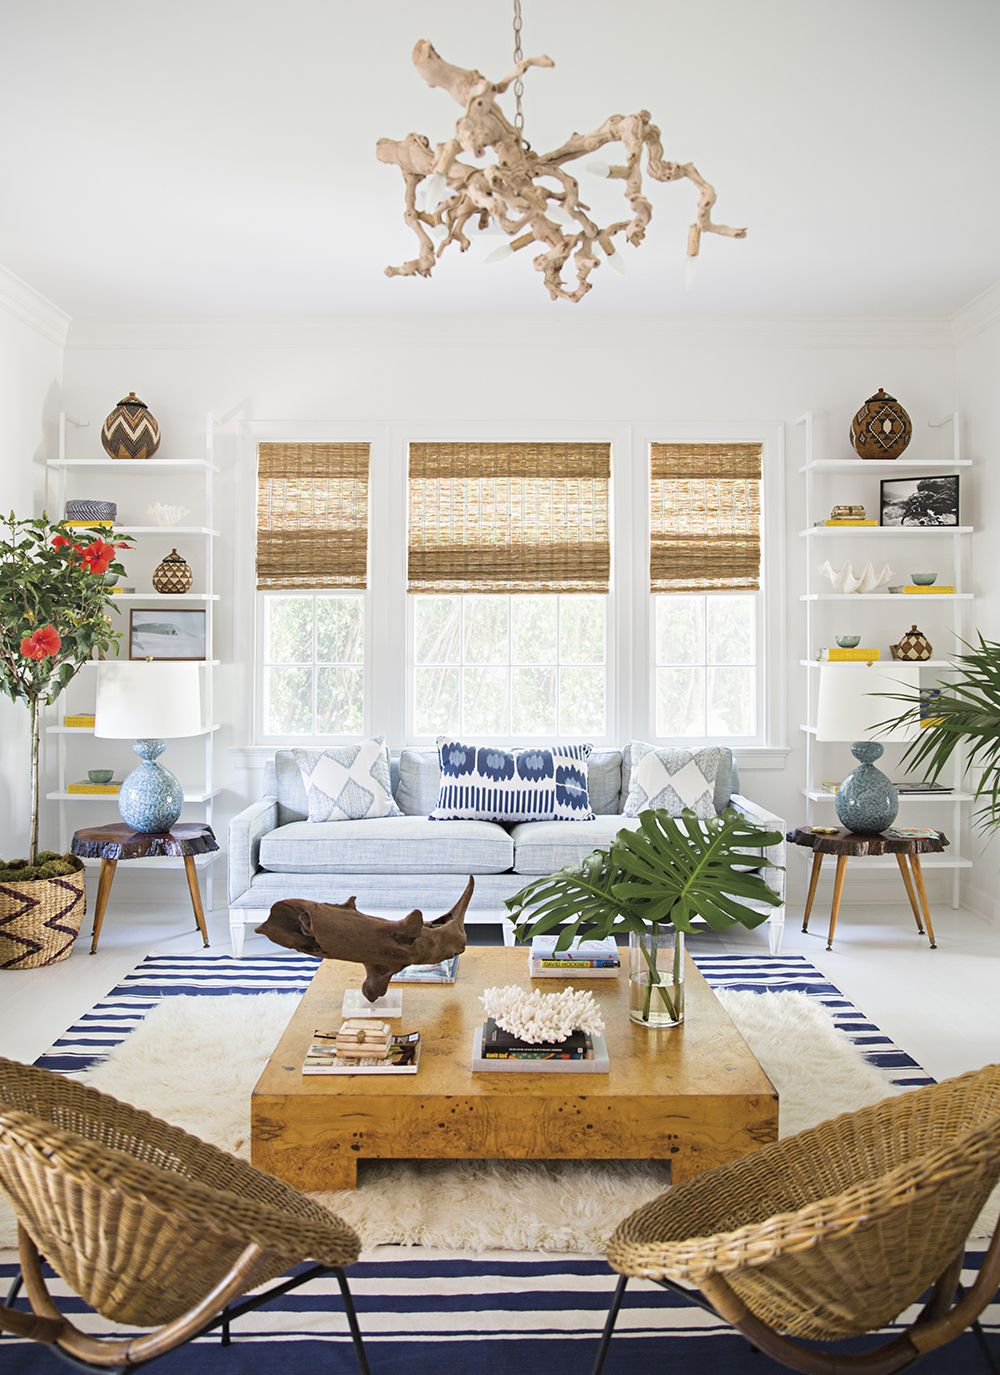 70 best palm beach chic images on pinterest palm beach decor